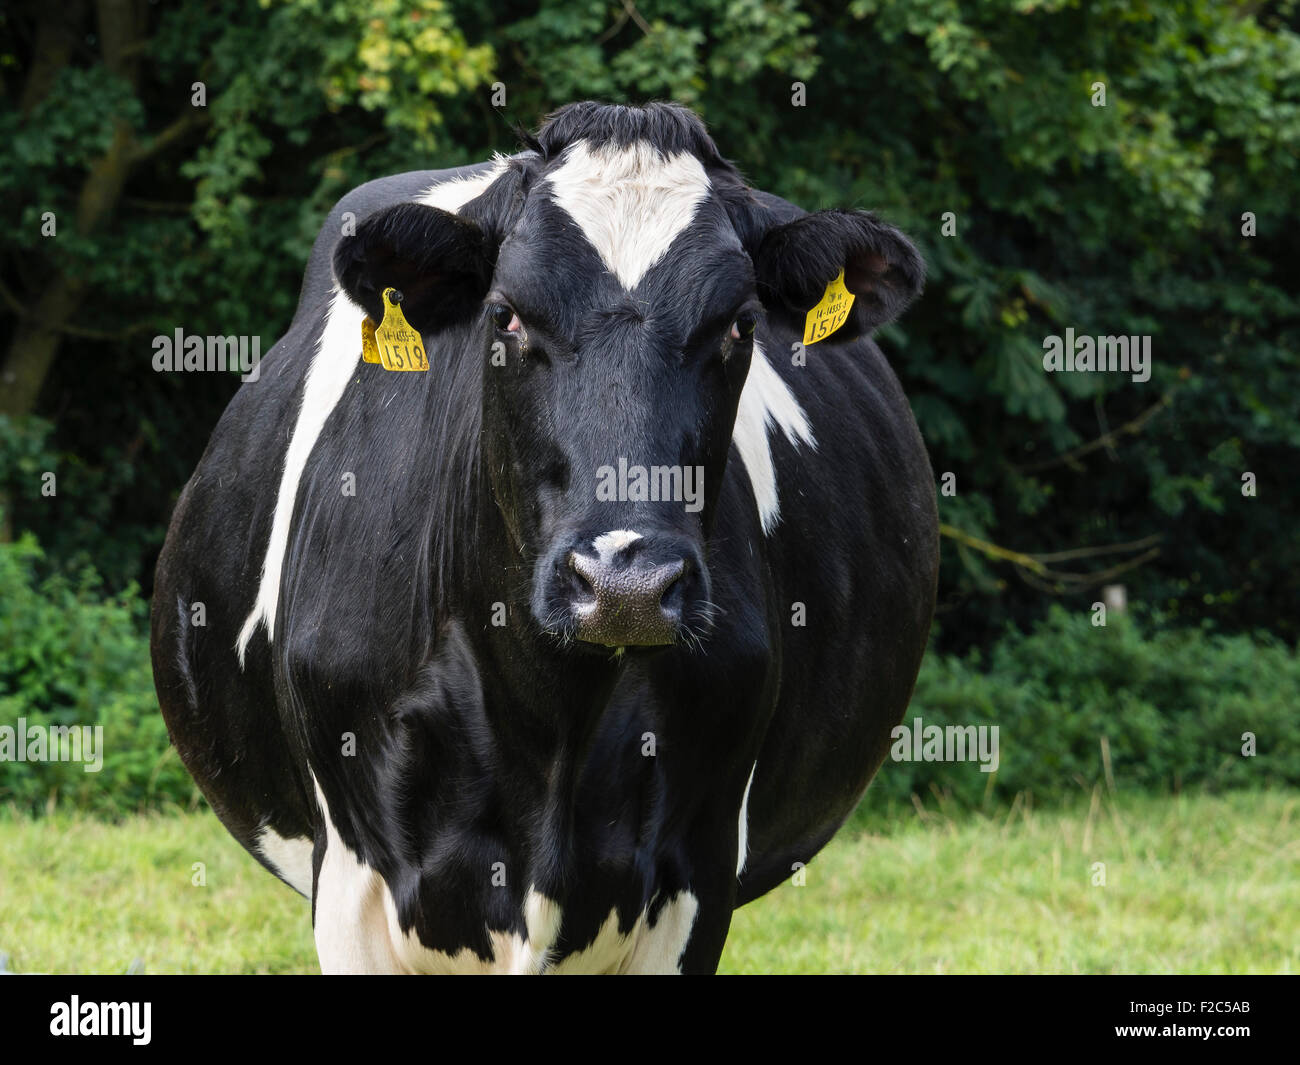 Cow Portrait in a Field with Ear Tags, Dorset, England, UK - Stock Image